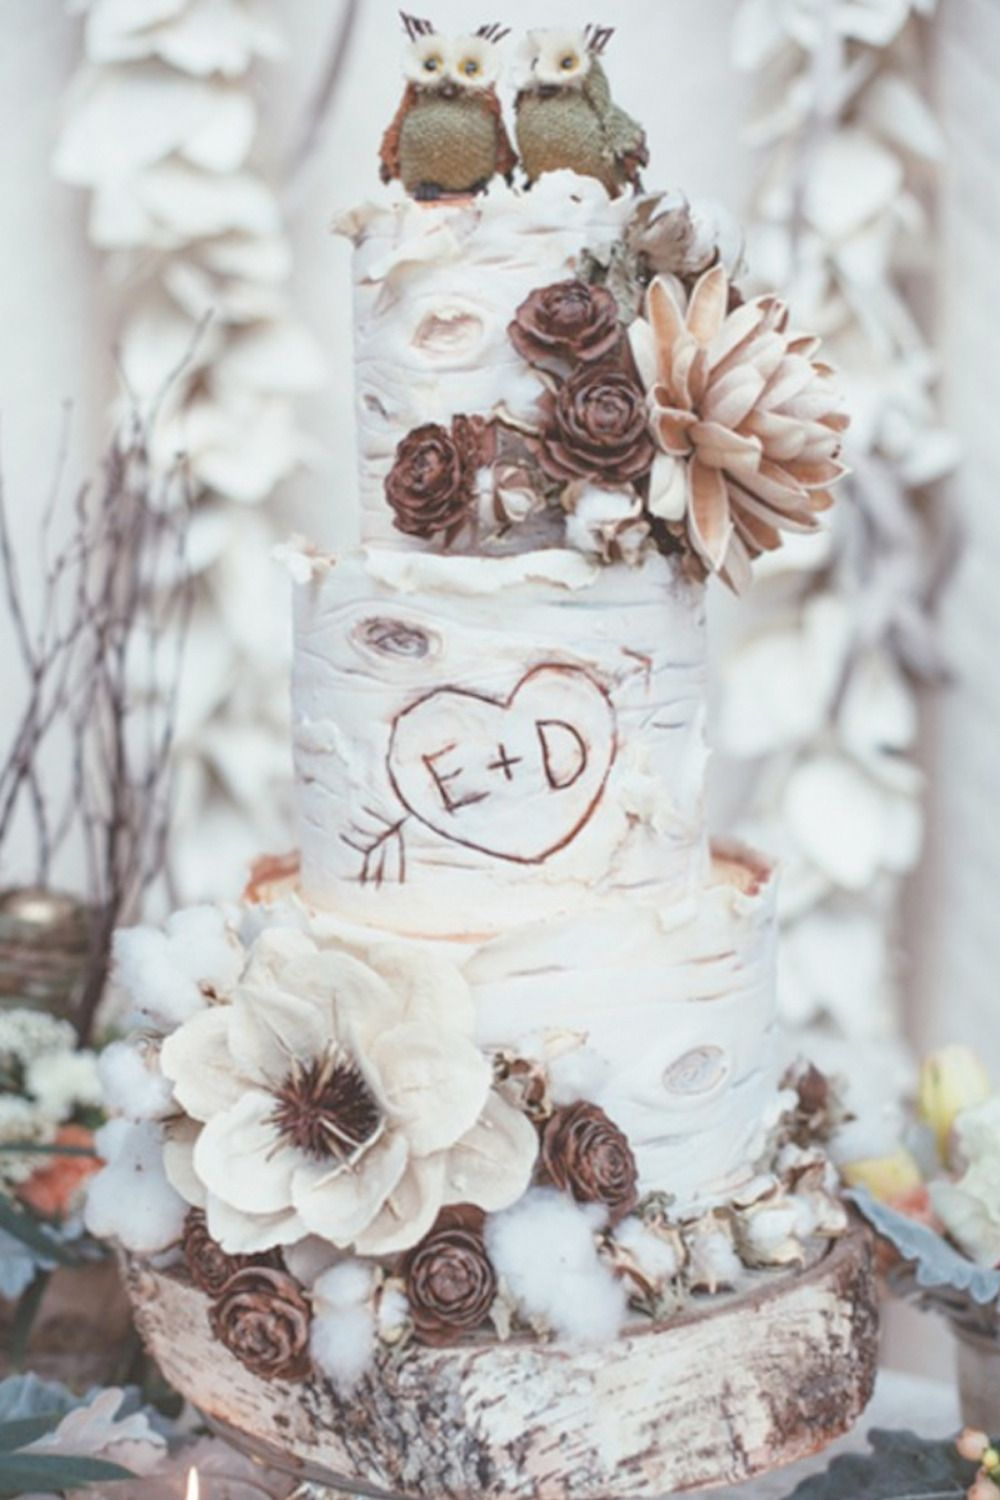 Wedding Invitations & Cakes For Cold Weather Weddings | Pinterest ...